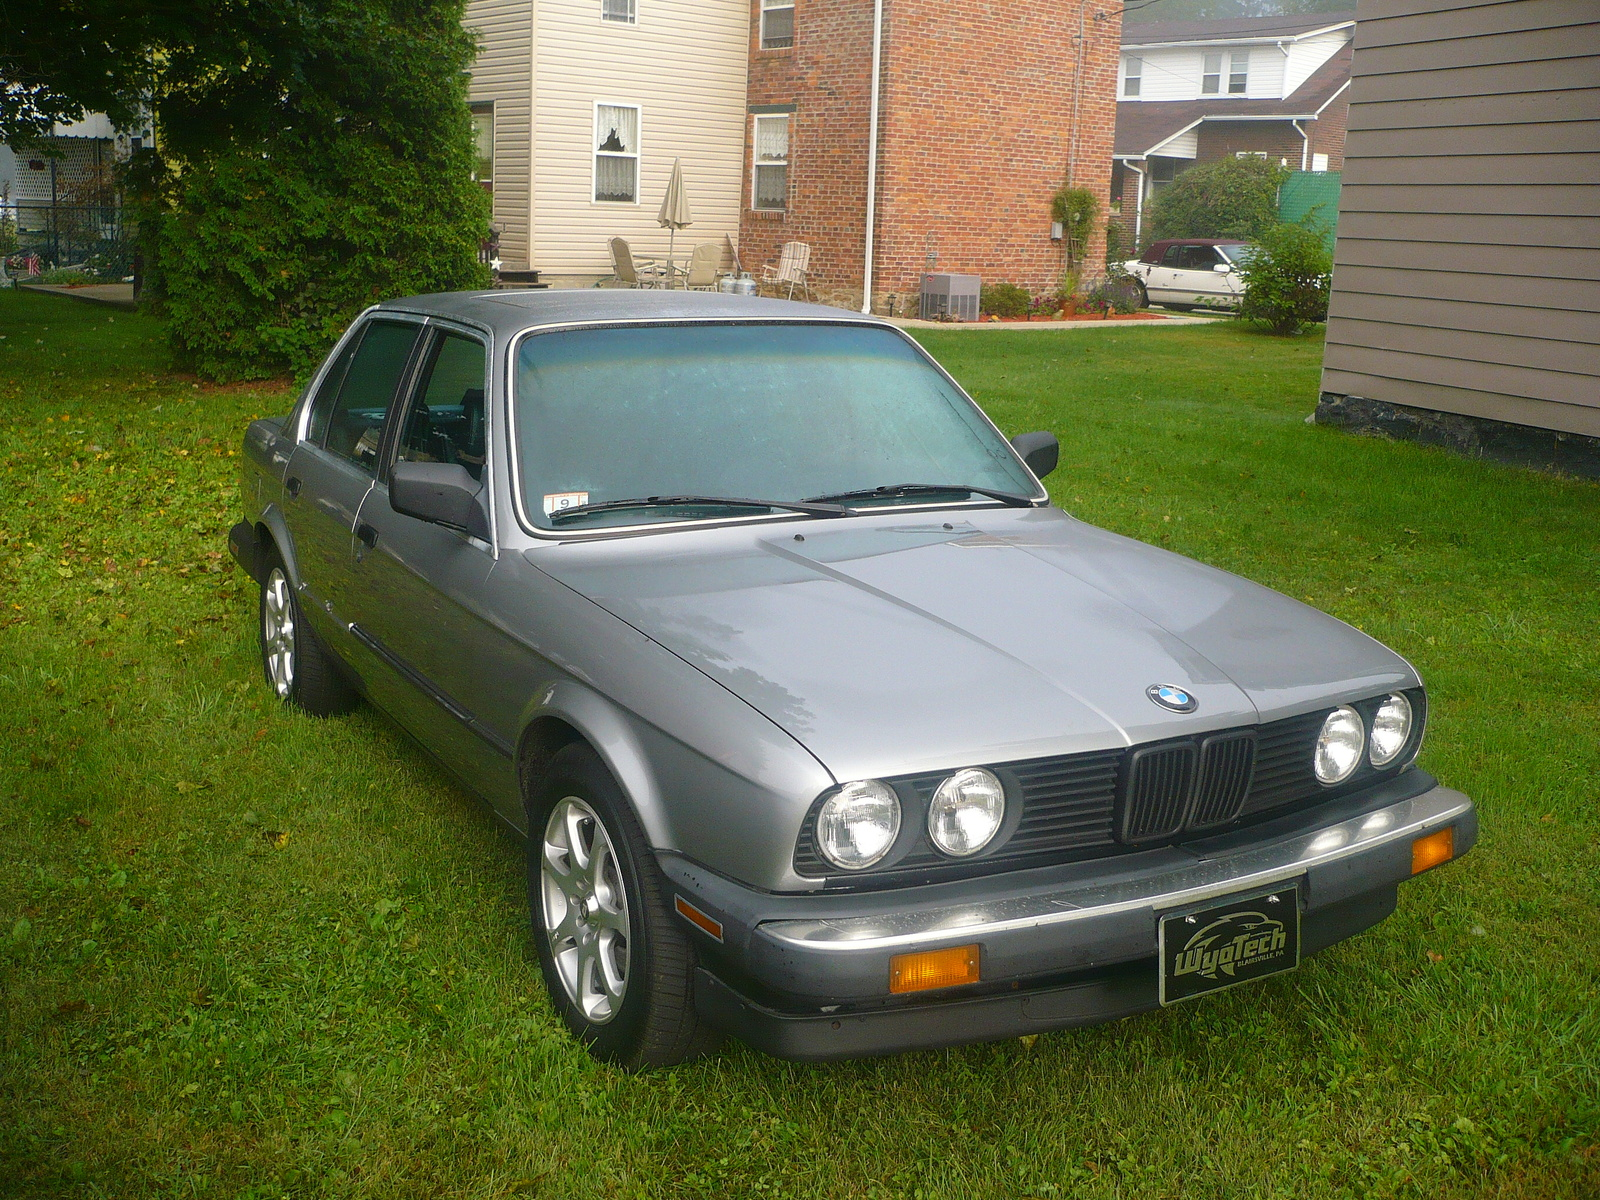 BMW 3 series 325e 1987 photo - 4